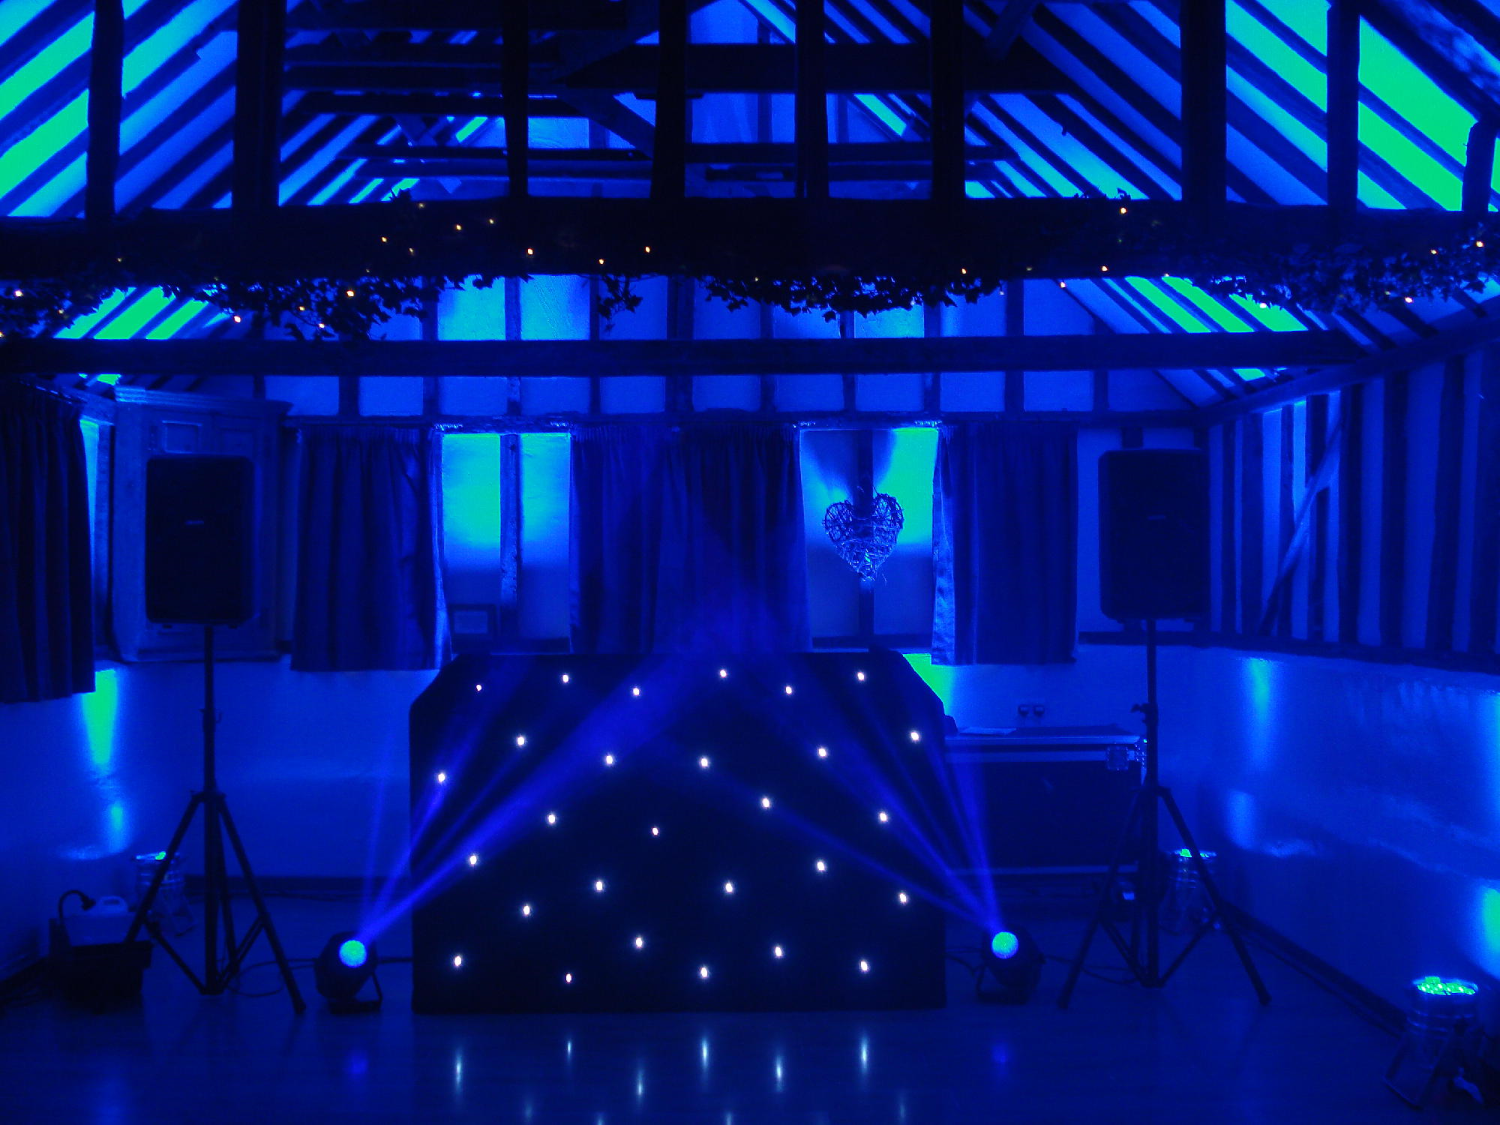 Contemporary Wedding Disco 2013-7-17-21:15:16